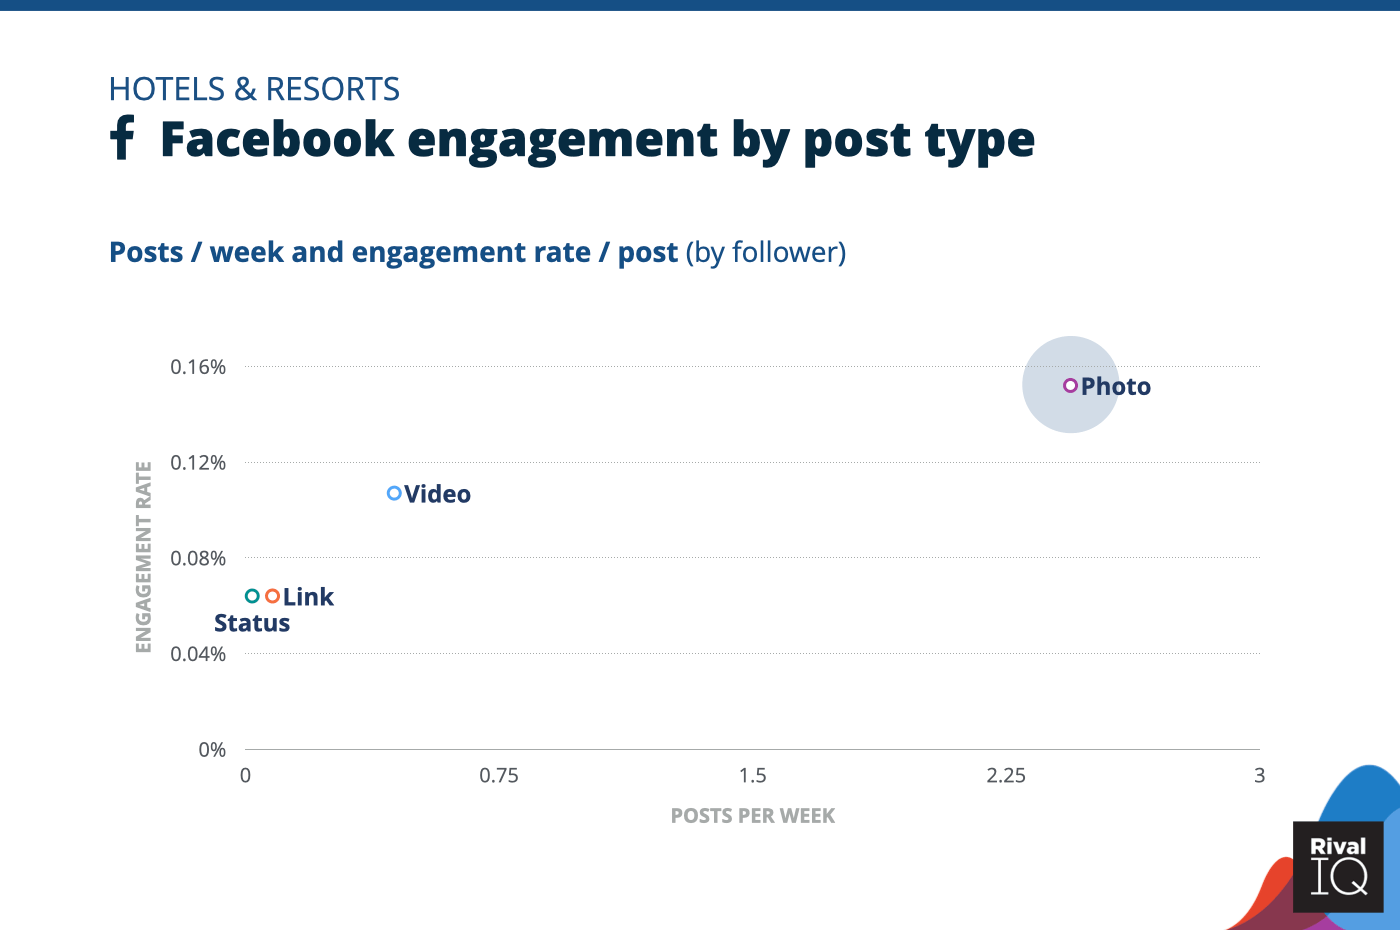 Chart of Facebook posts per week and engagement rate by post type, Hotels & Resorts